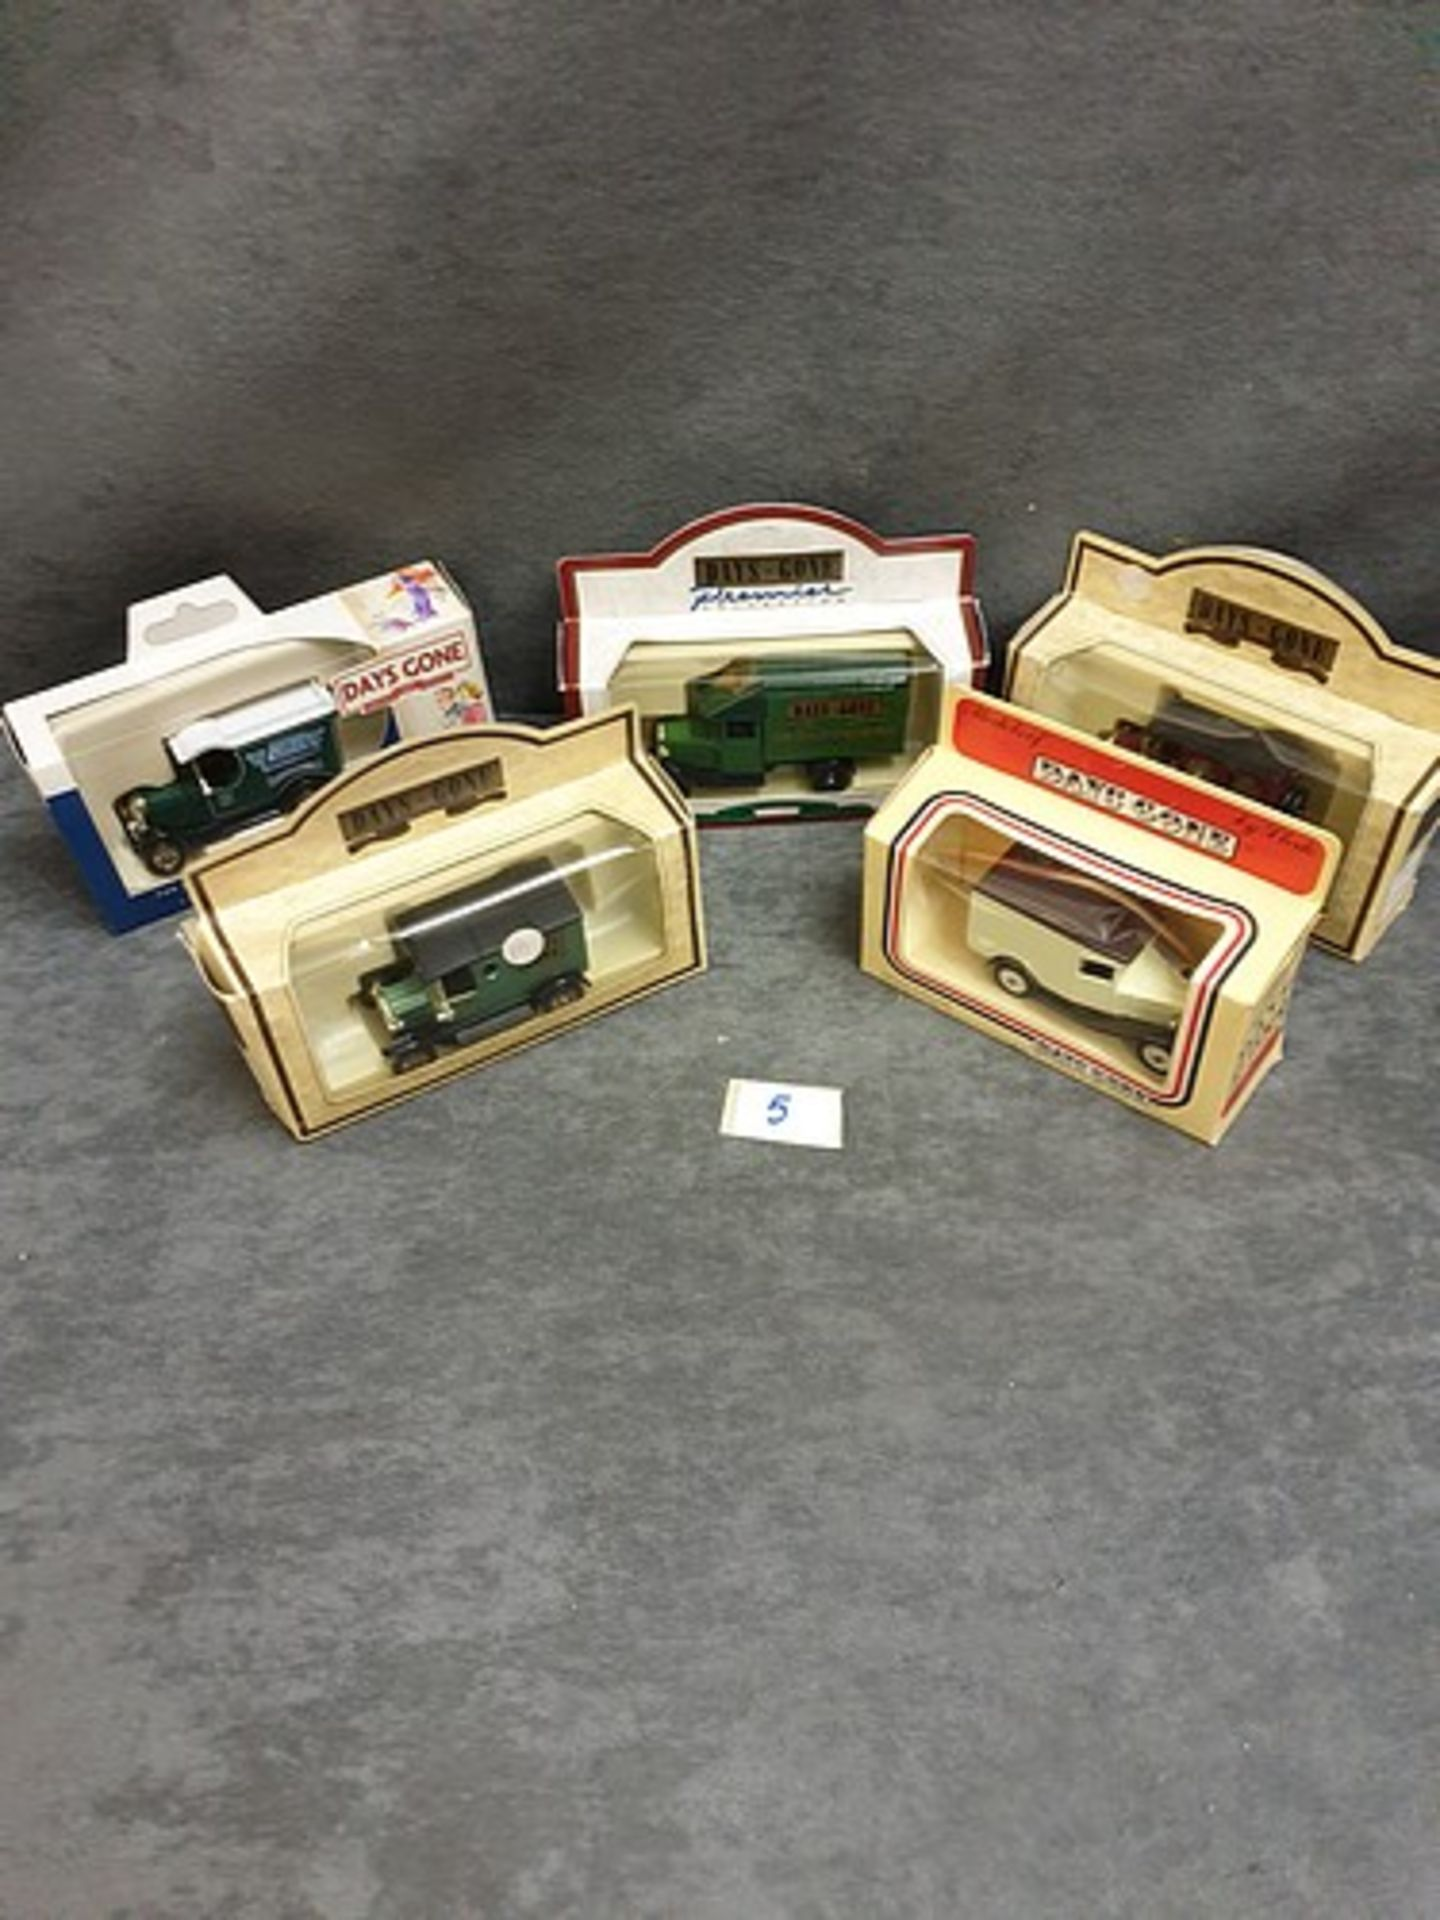 5x Days Gone Diecast Vehicles Individually Boxed Advertising Grand Hotel Days  Gone Lledo Plain.